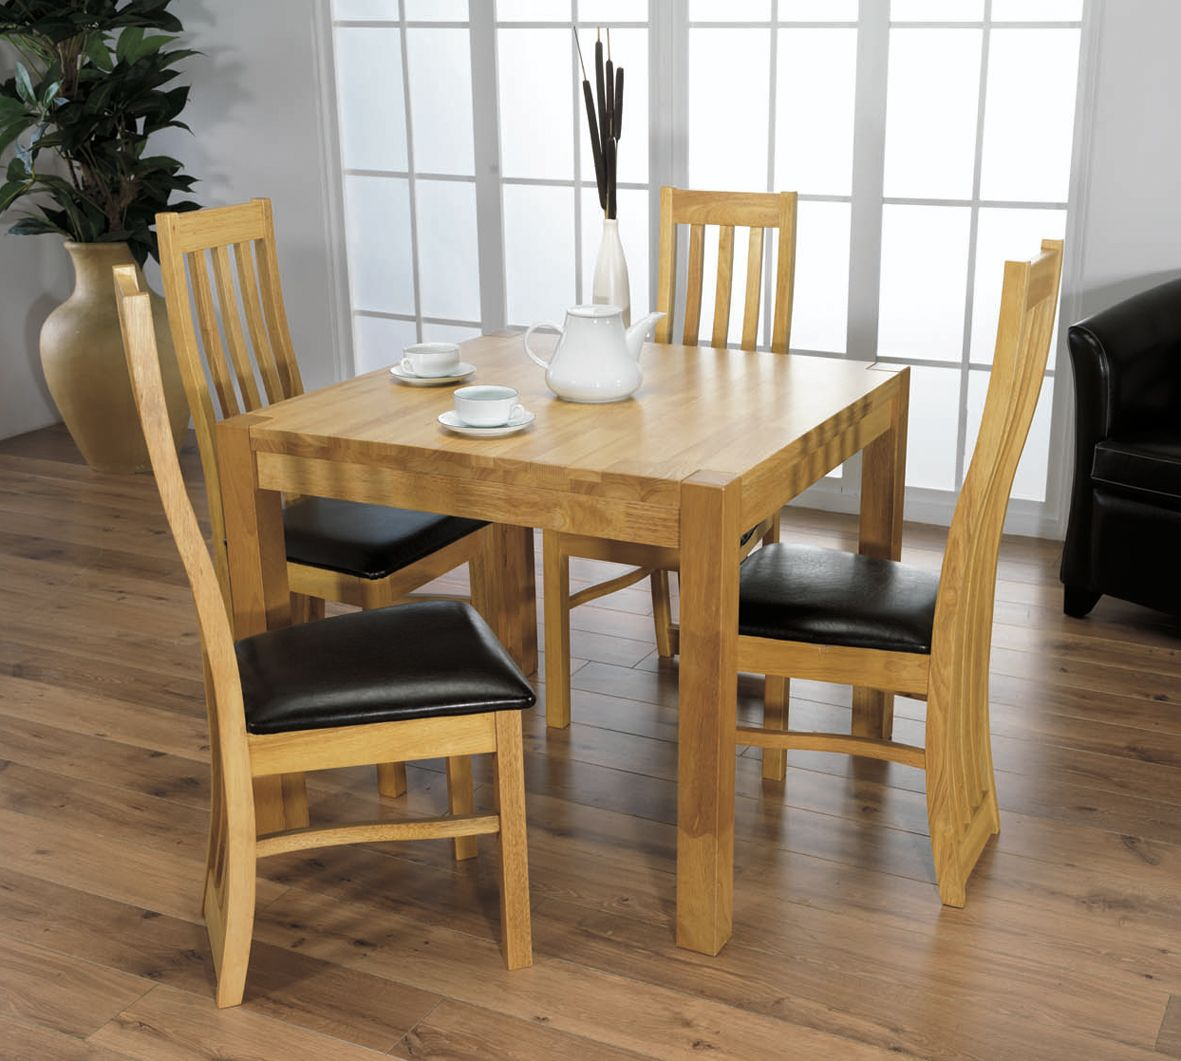 Why A Small Dining Table And Chairs Is A Premium Choice Small